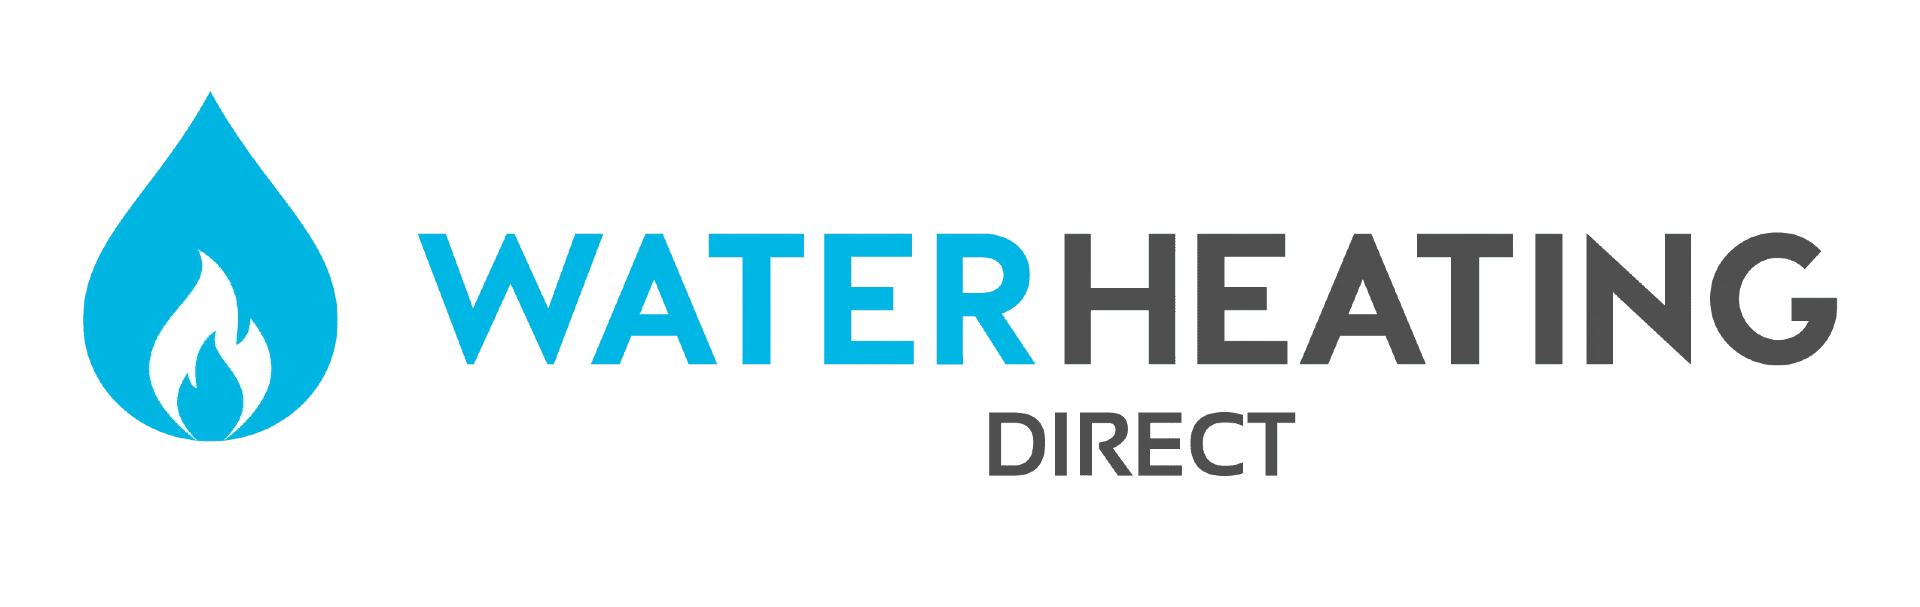 About Us - Water Heating Direct logo